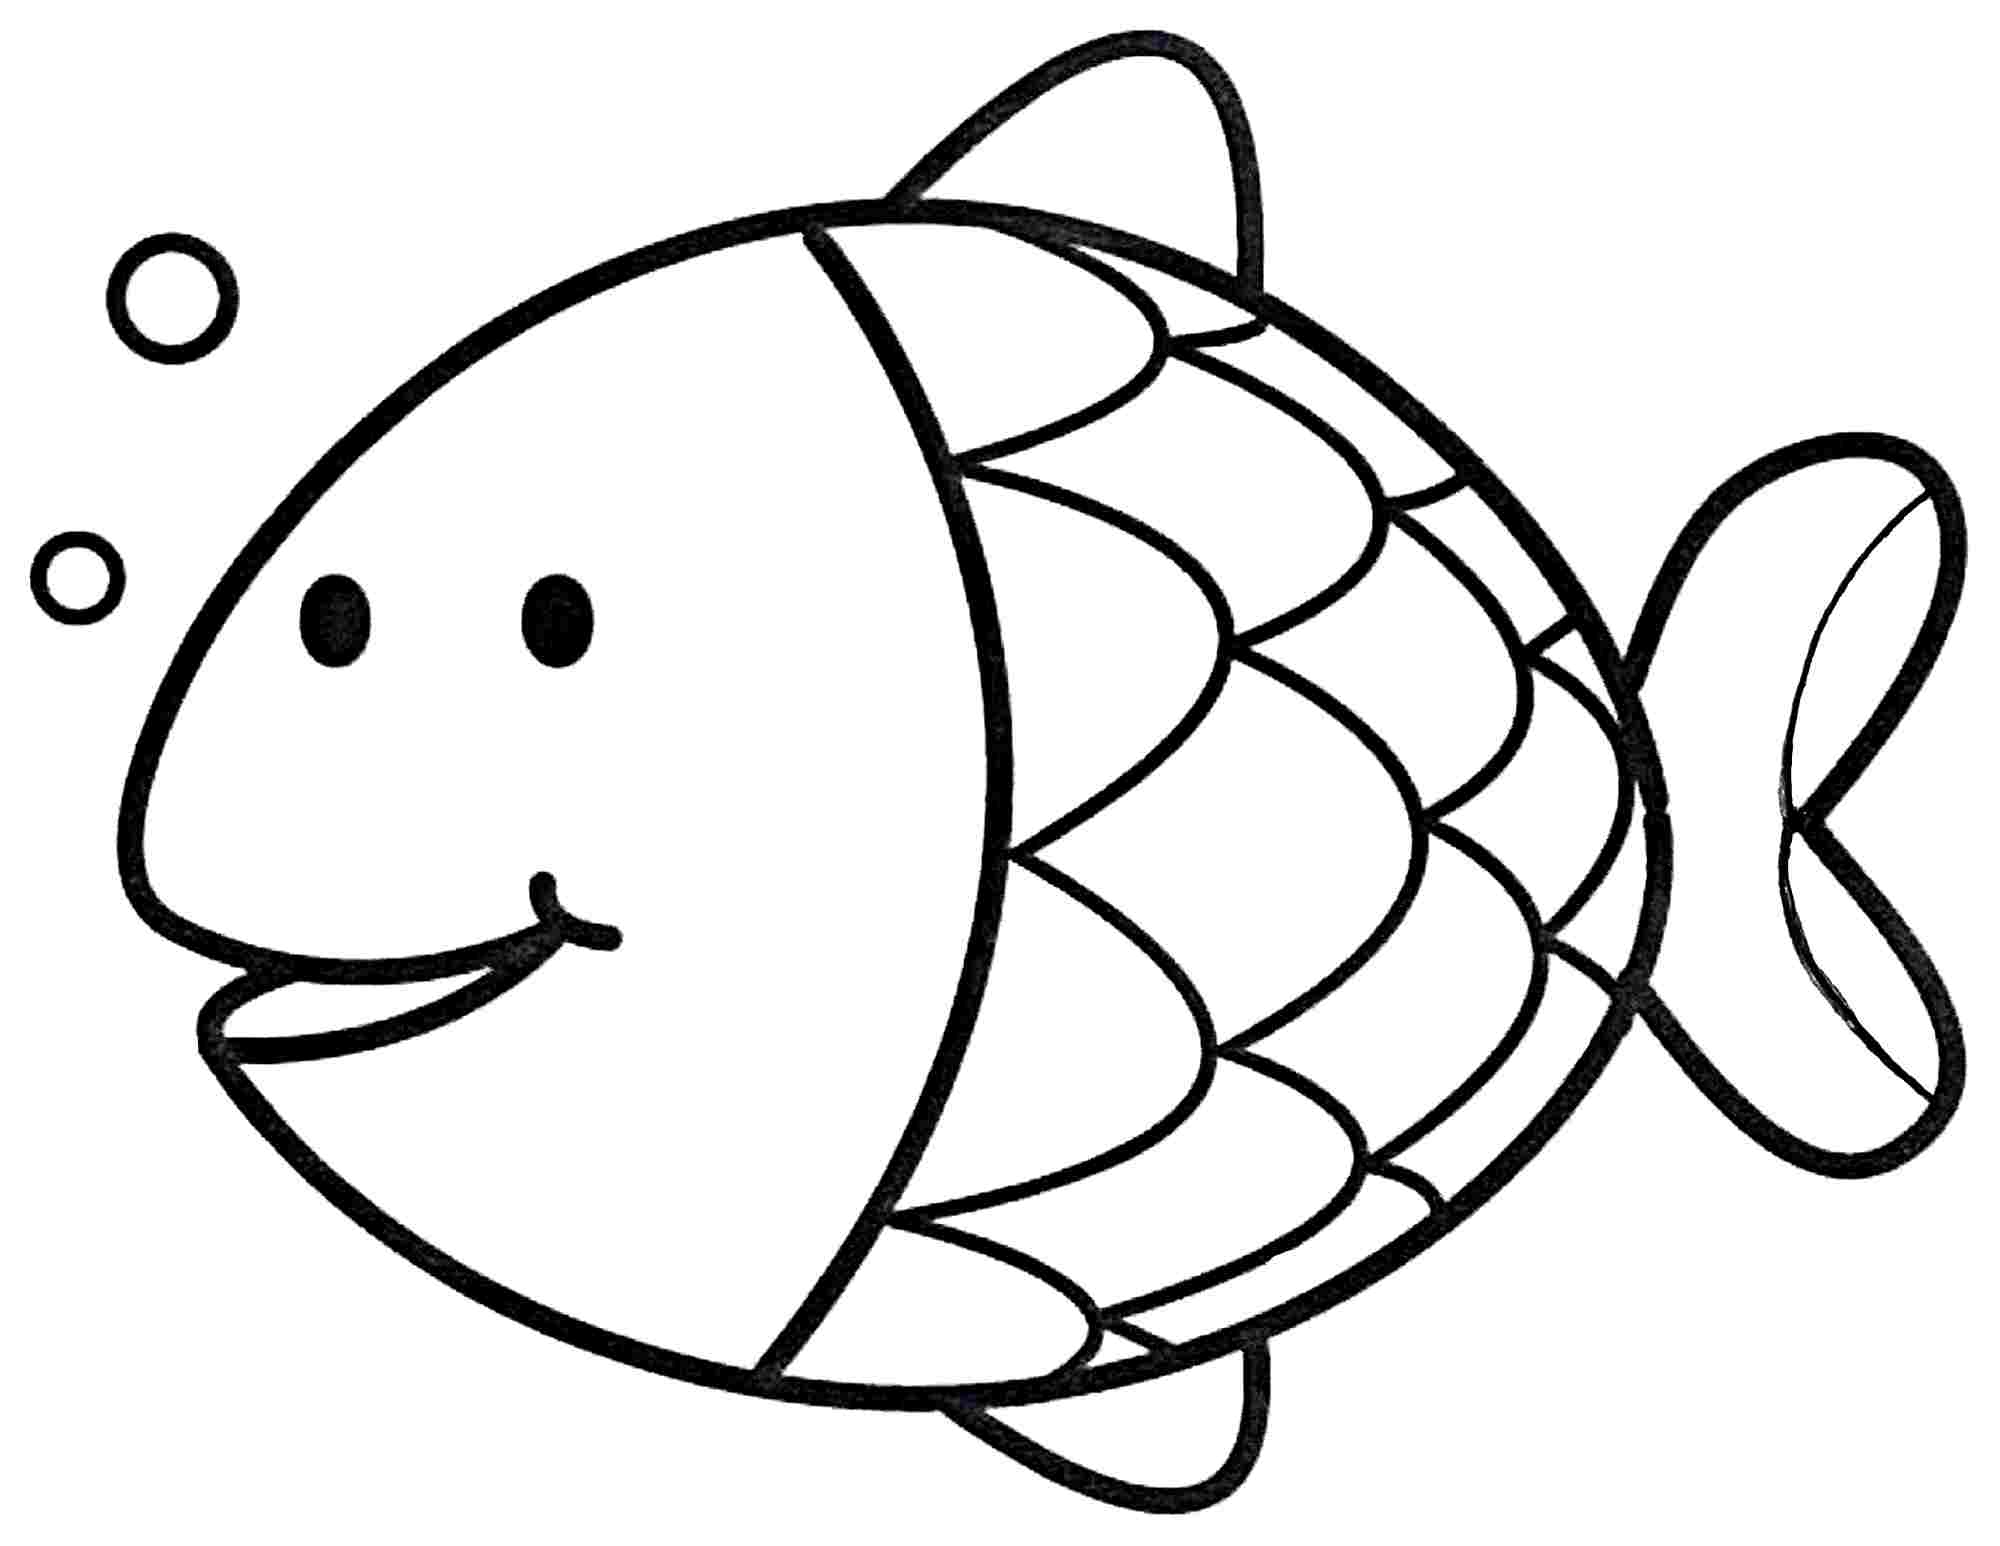 Rainbow Fish Coloring Pages Preschoolers Coloring Pages Coloring Free Pages For Toddlers Printable